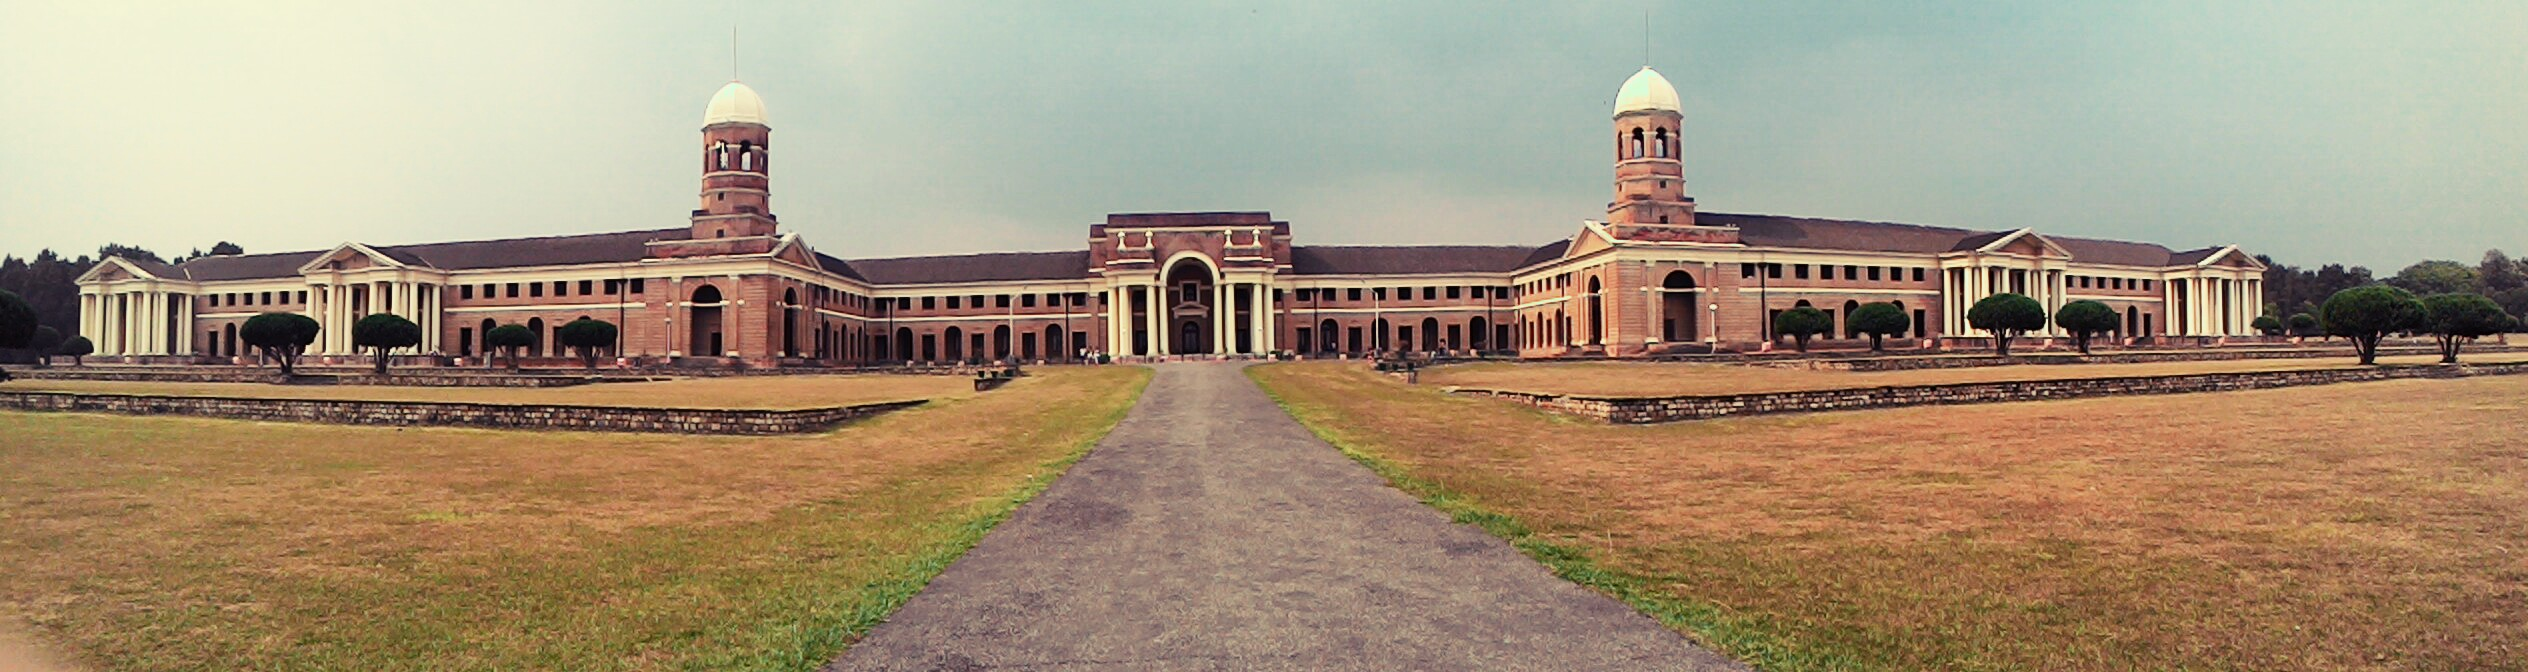 File:Forest Research Institute Dehradun Uttrakhand, India.jpg ...